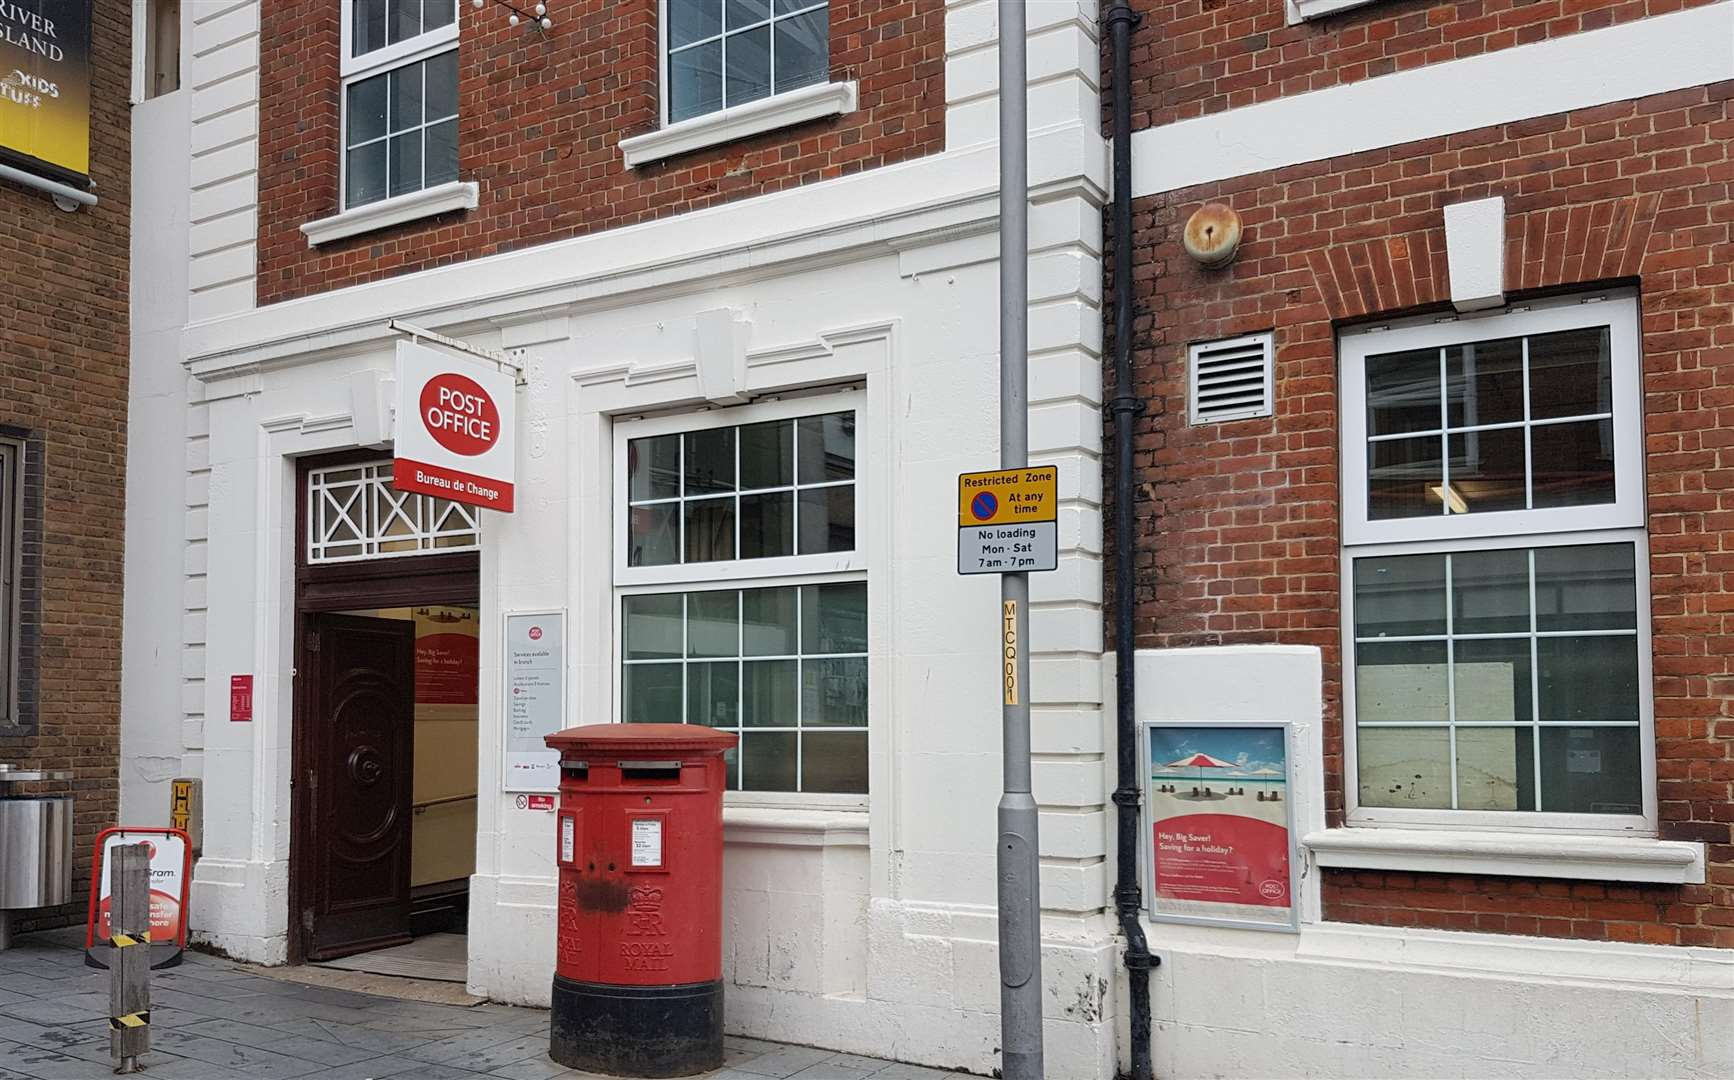 The Tufton Street Post Office is due to relocate to WHSmith by next Spring